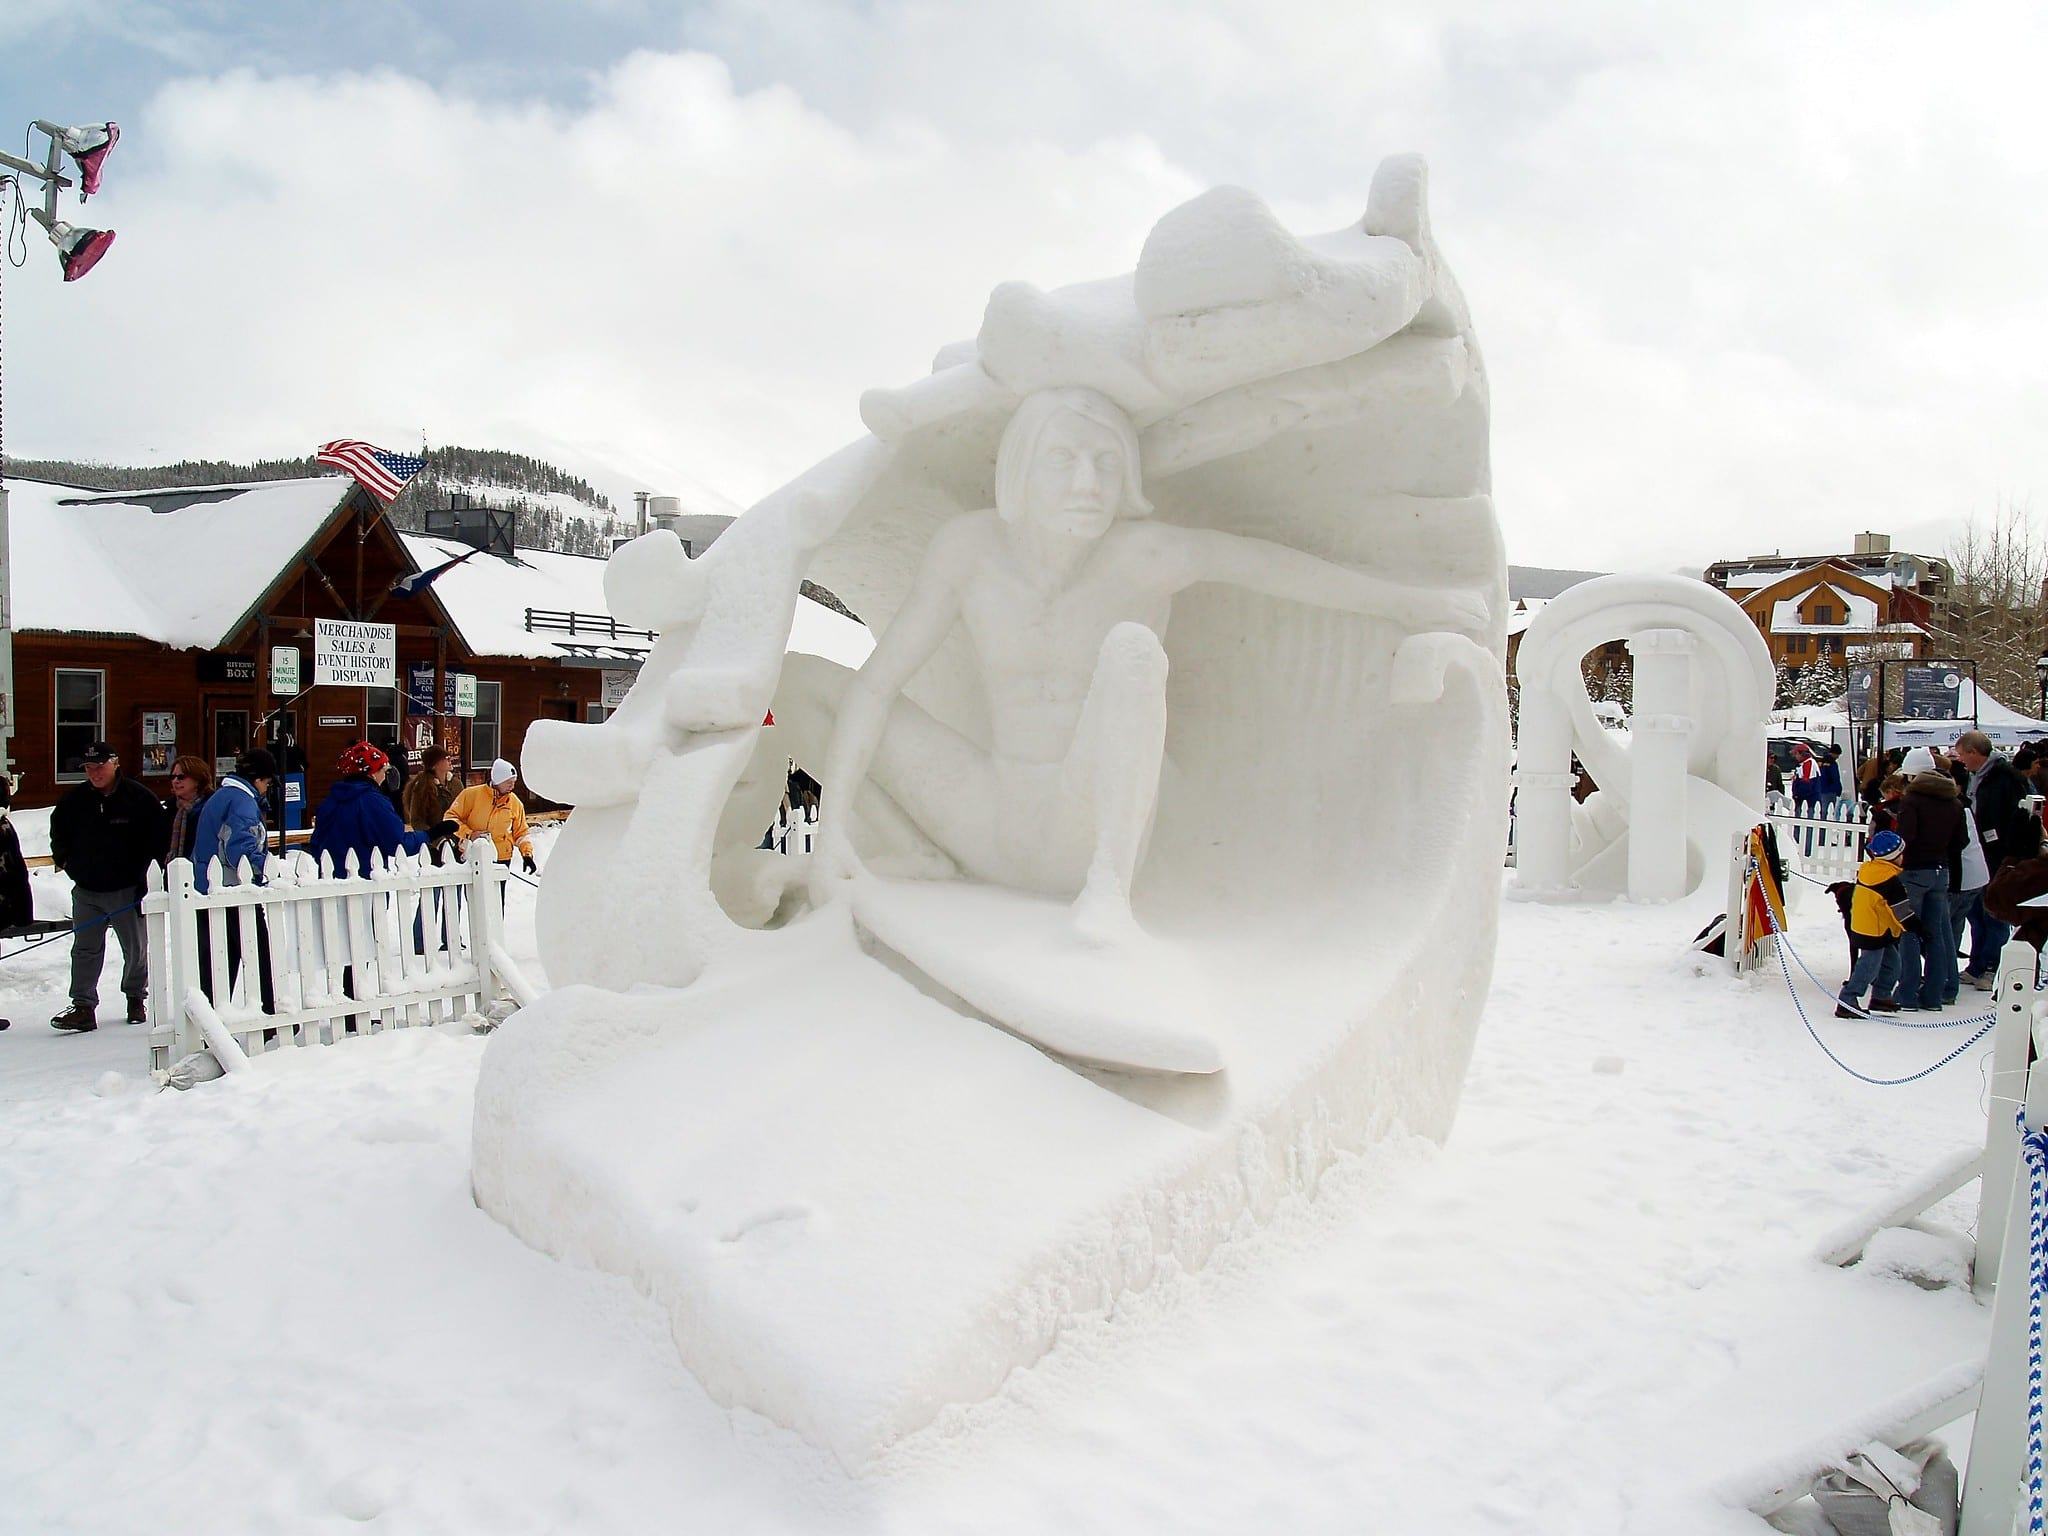 image of snow sculpture